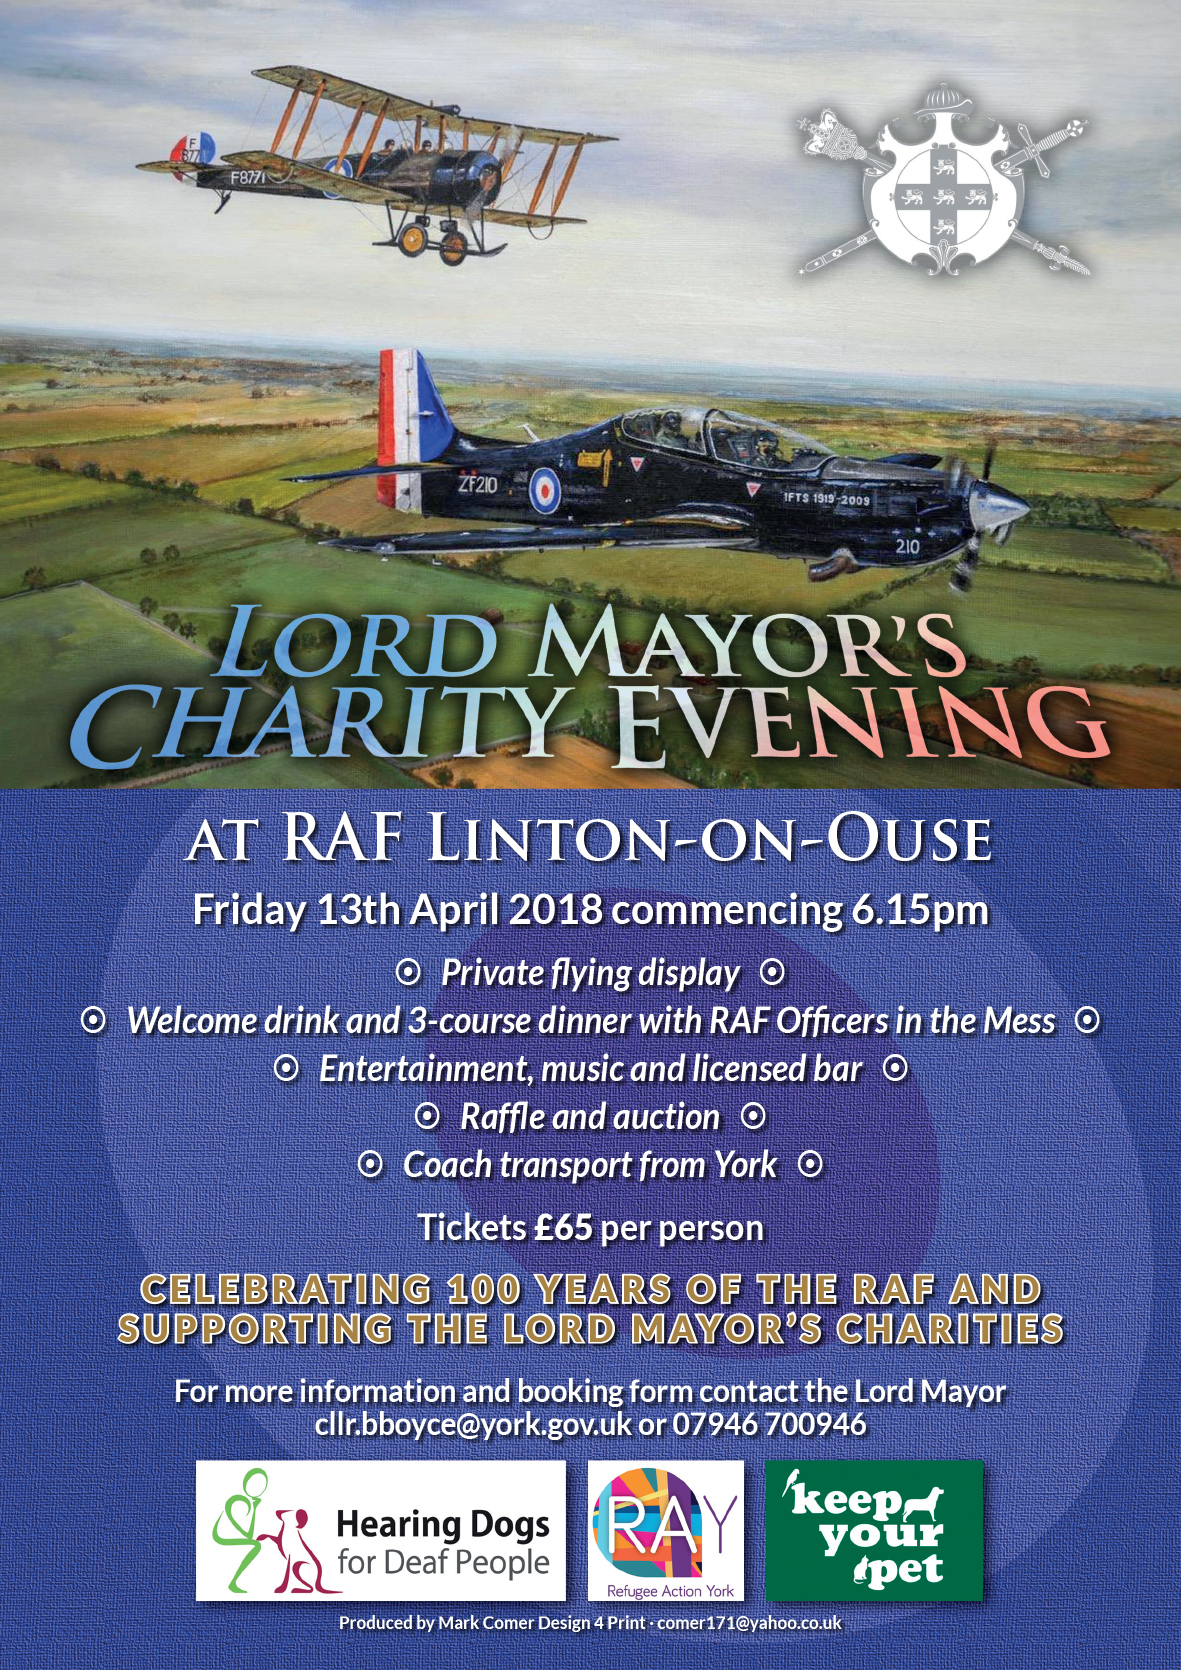 Evening at RAF Linton-on-Ouse with dinner and flying display